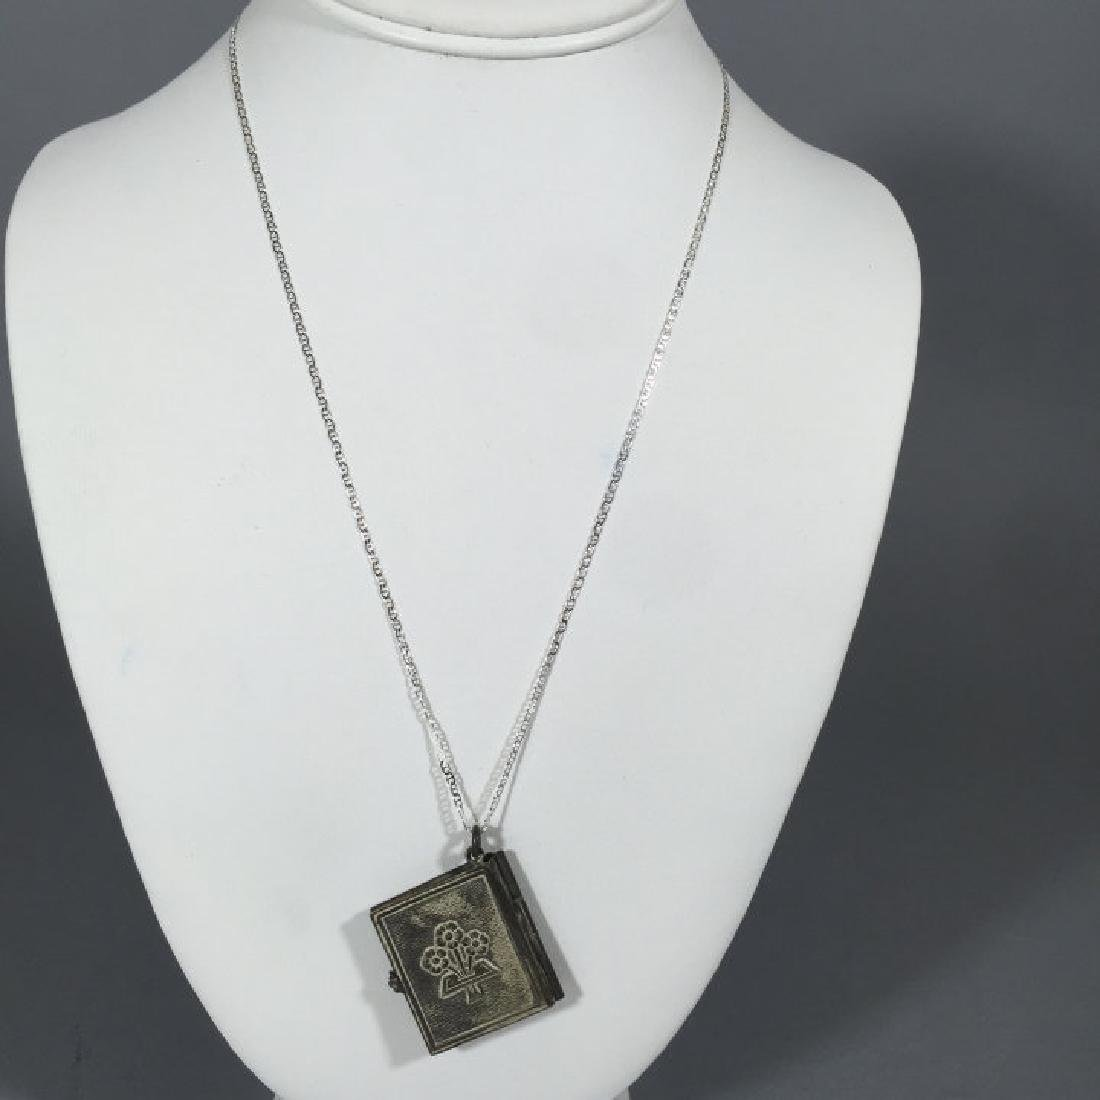 Antique Book Form Locket on Sterling Silver Chain - 2